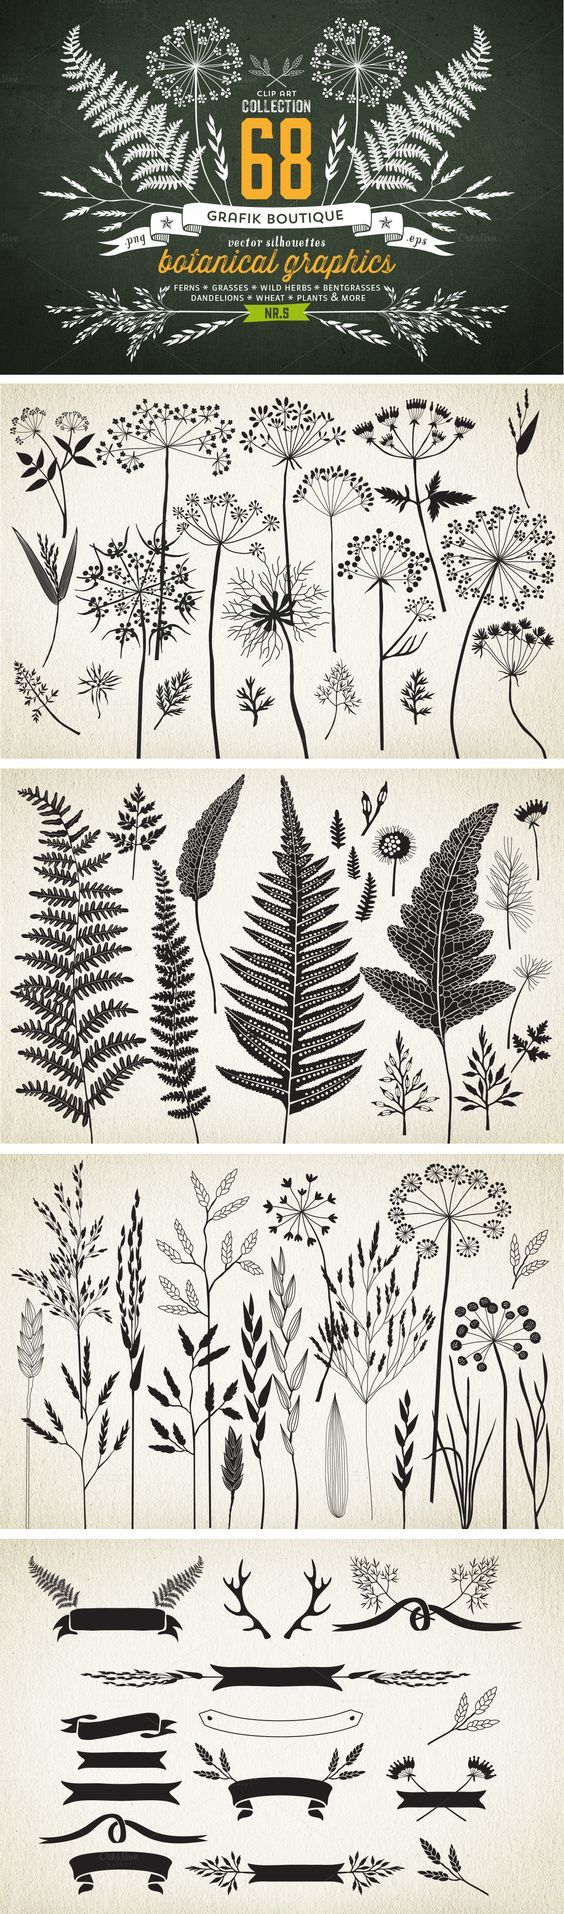 Botanical element illustrations... *IDEA* try printing to give a sense of surroundings? or layering in lively scrapbook format?: